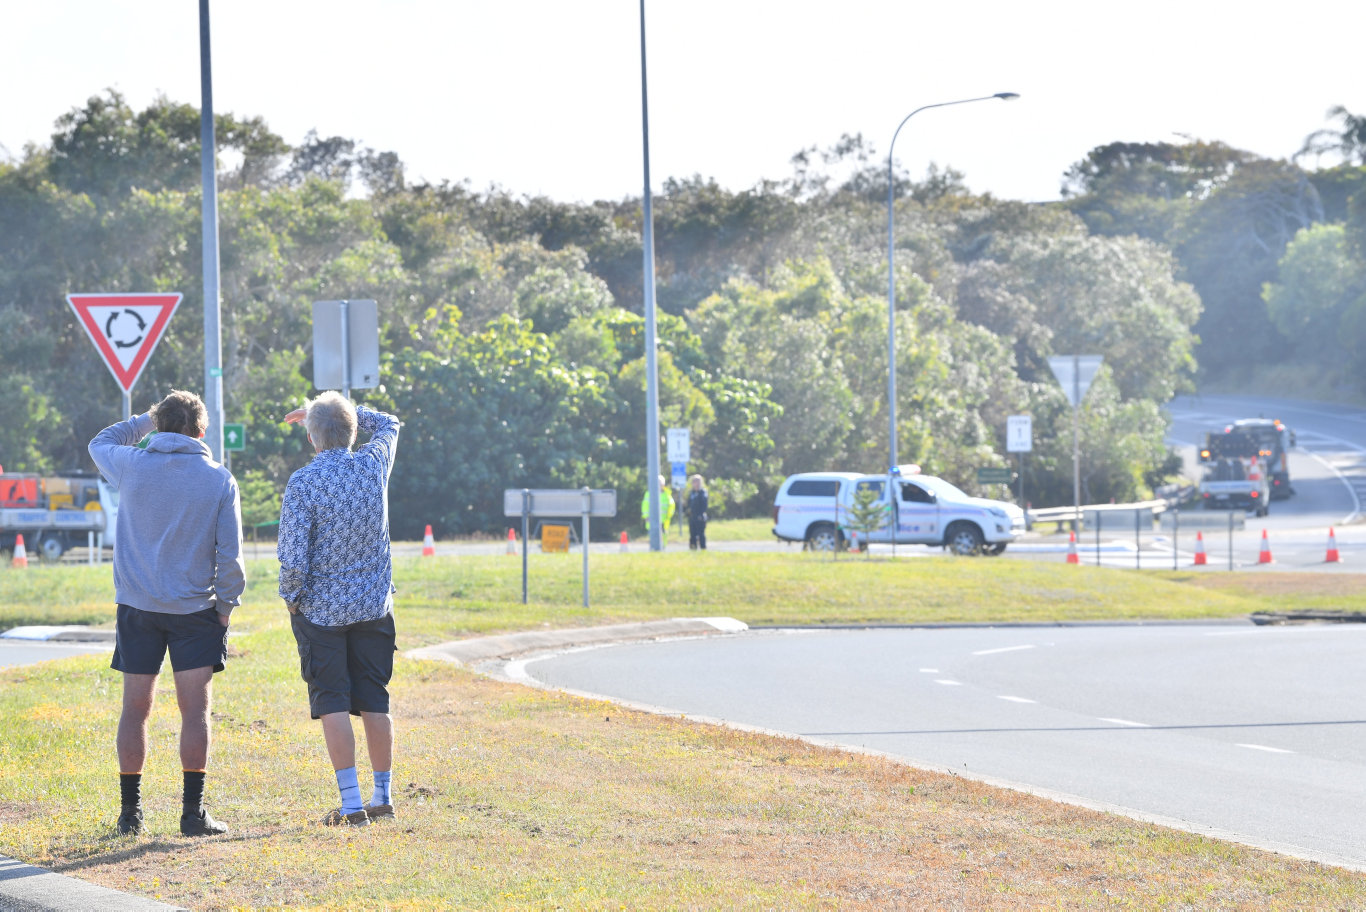 Residents are lined up waiting for the police to open the roads so they return to their Peregian homes after two nights. Photo: John McCutcheon